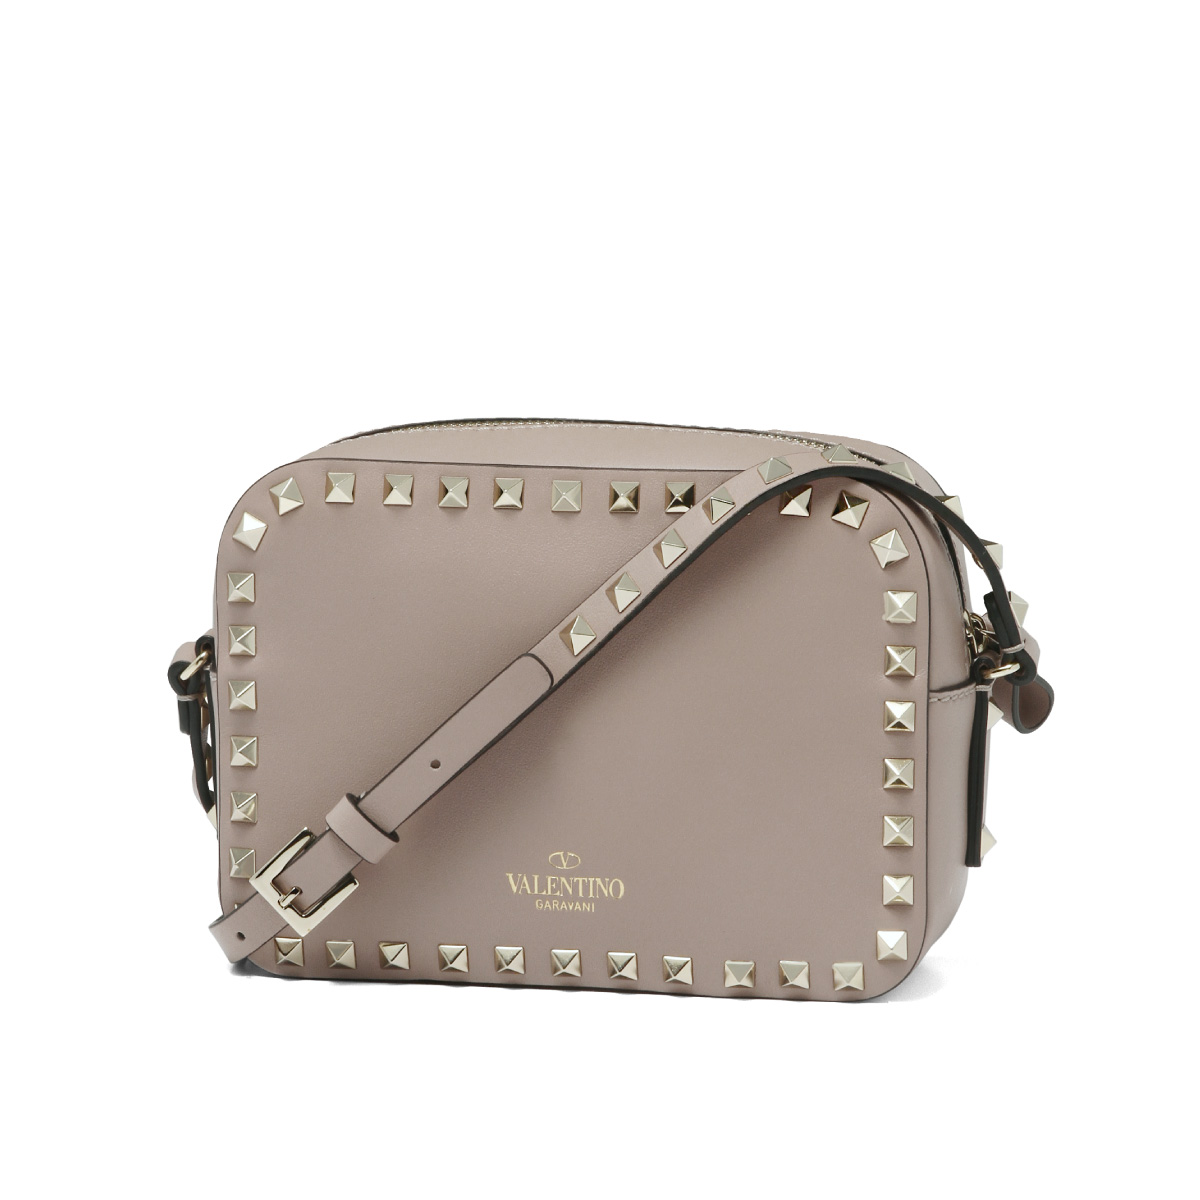 1856cb8bf5 Valentino VALENTINO bag lady PW2B0809BOL P45 shoulder bag ROCKSTUD lock  stud bolt POUDRE is beige